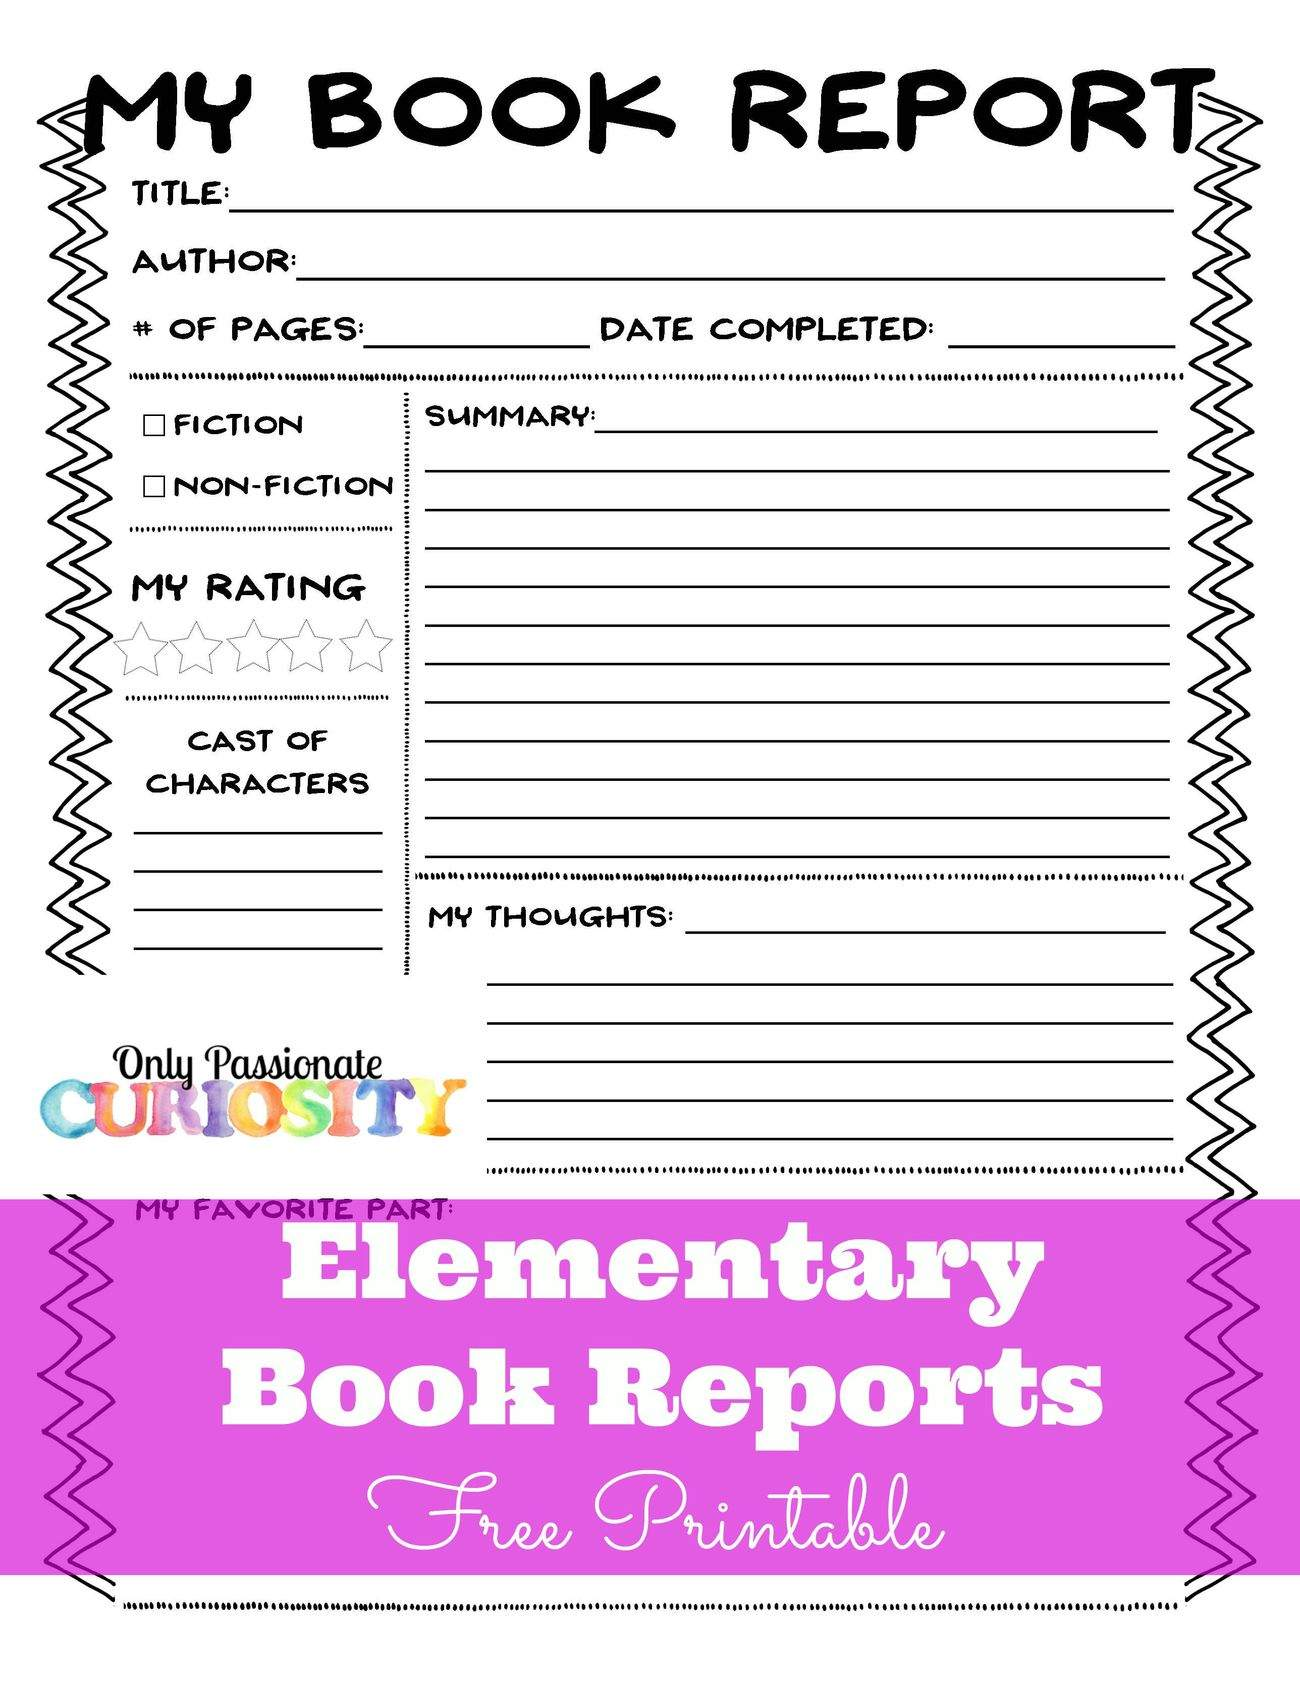 Elementary Book Reports Made Easy Only Passionate Curiosity